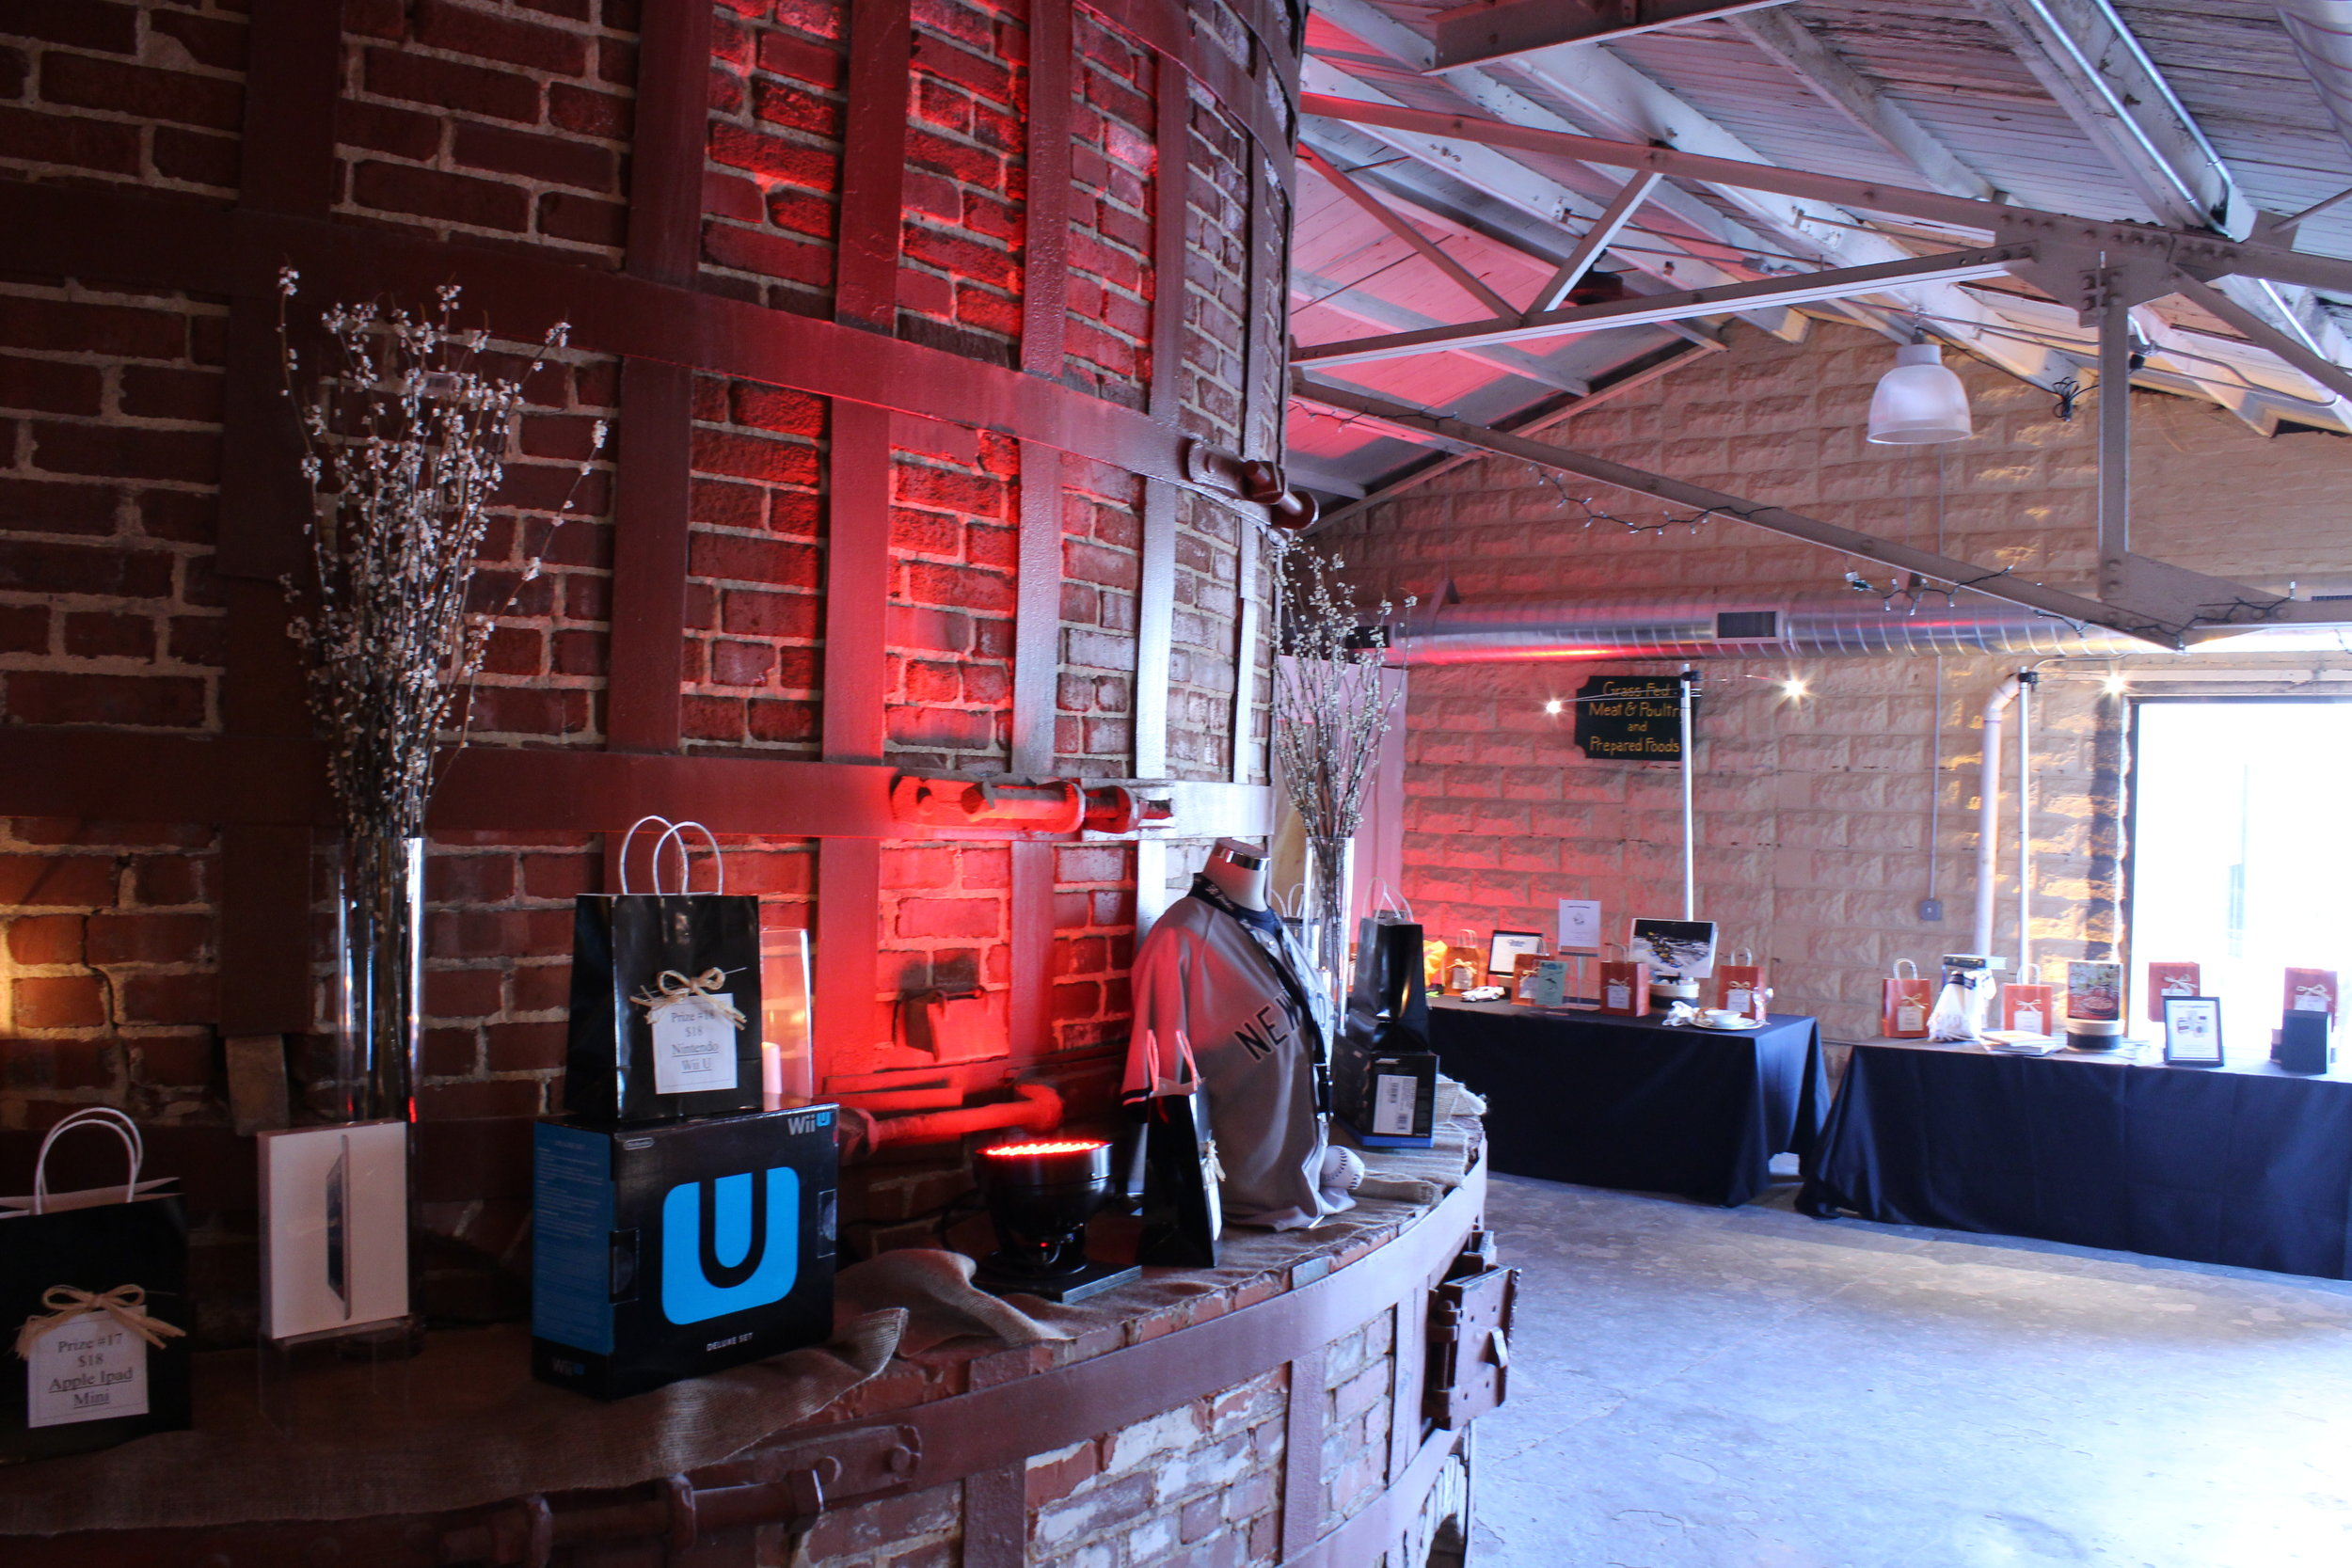 NJ+event+decor+design+auction+lighting+rentals+gala+fundraiser.jpg